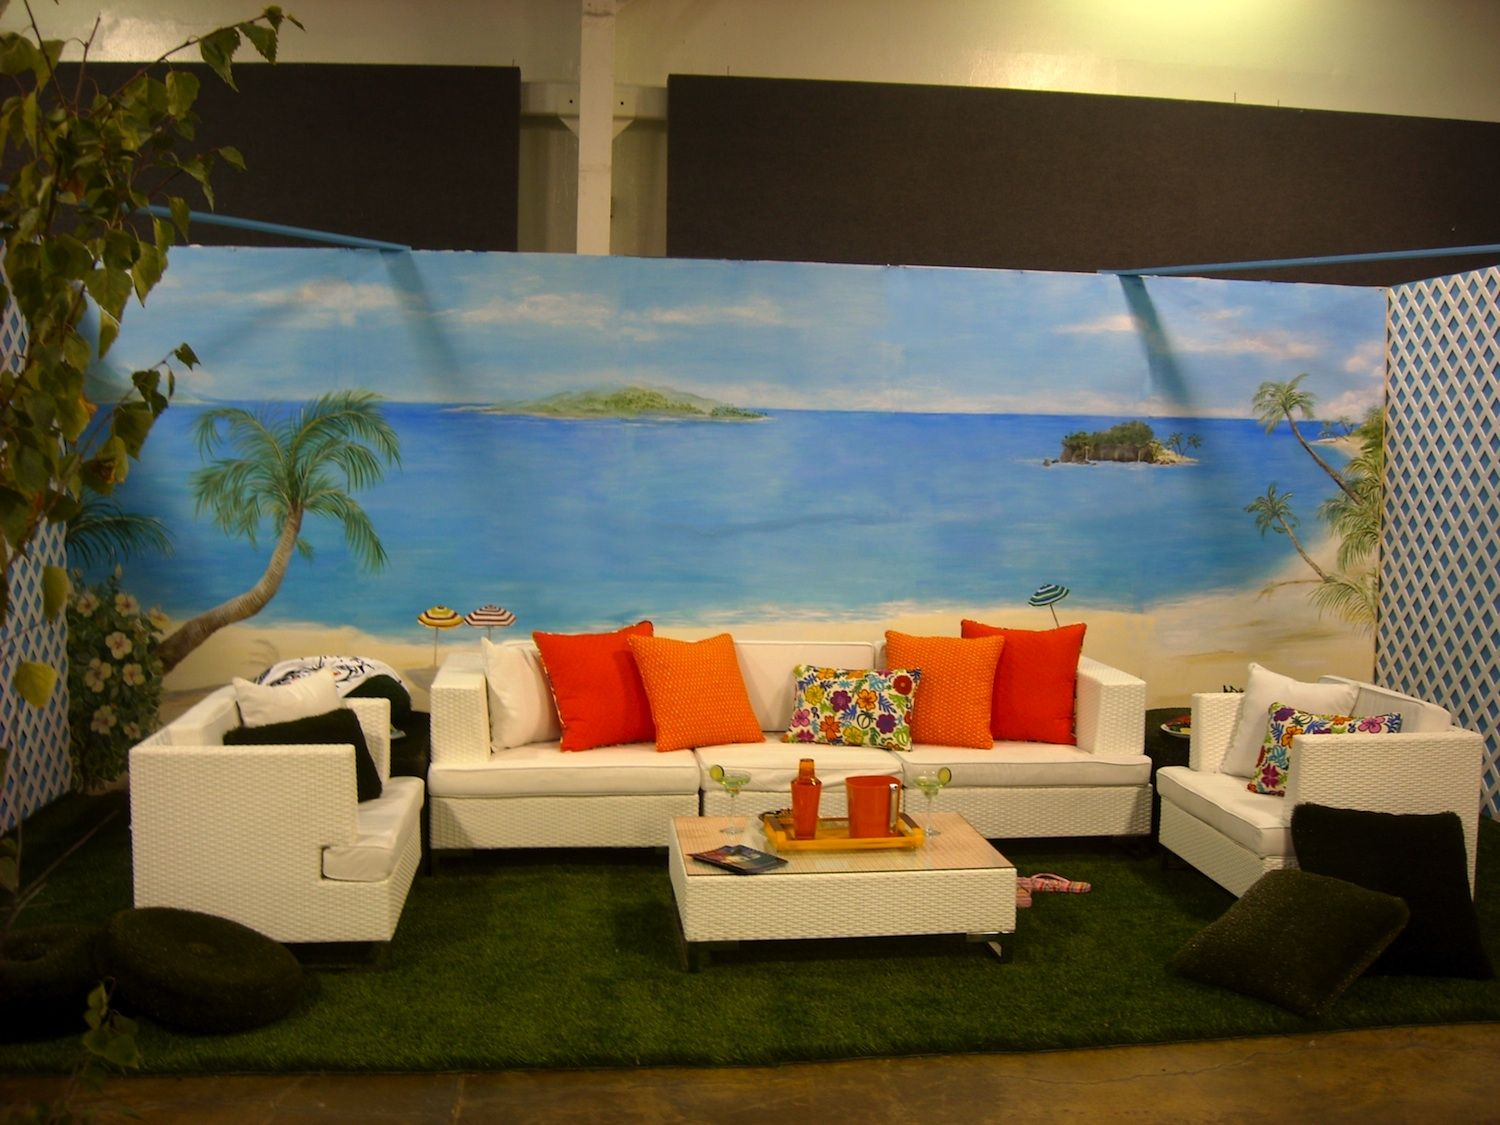 Hand painted beach mural on stick and peel wall fabric wall art hand painted beach mural on stick and peel wall fabric amipublicfo Gallery